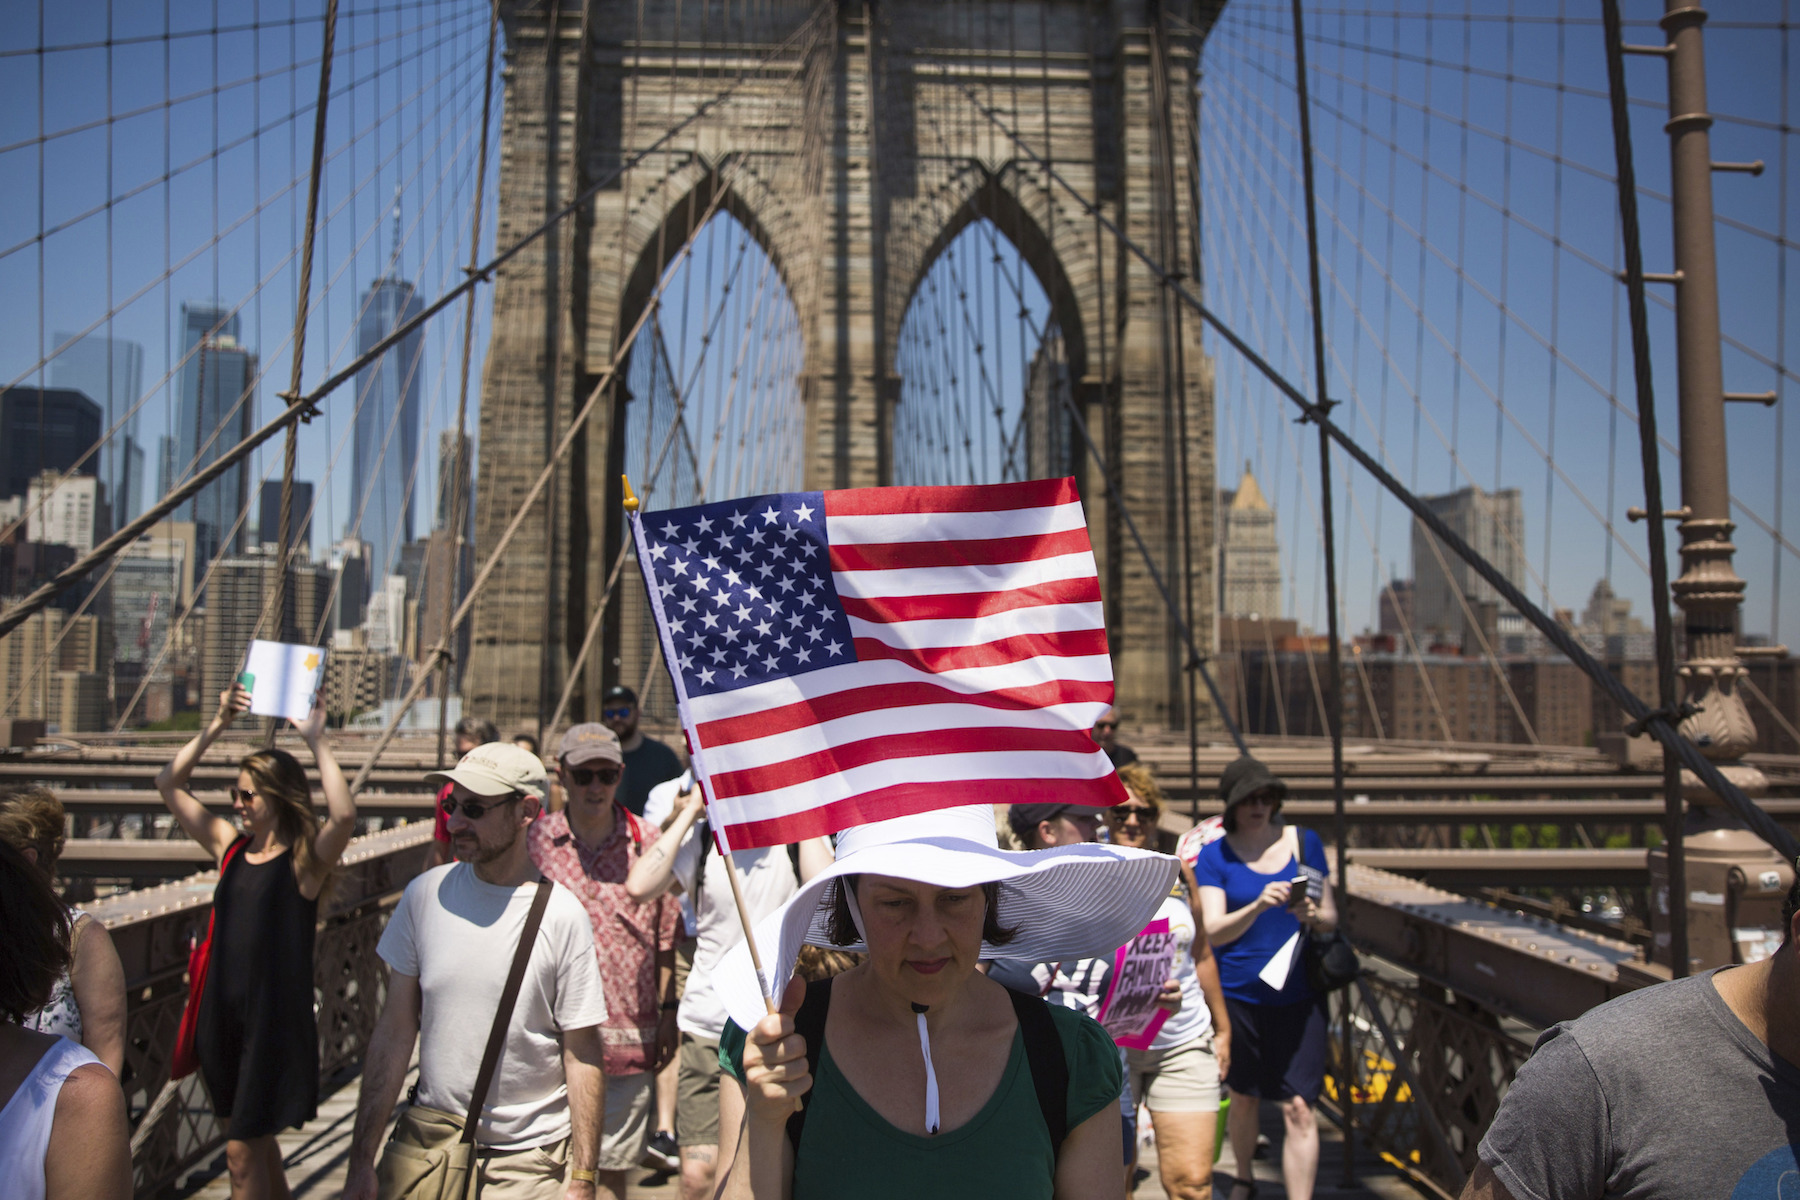 "<div class=""meta image-caption""><div class=""origin-logo origin-image ap""><span>AP</span></div><span class=""caption-text"">Activists carry signs across the Brooklyn Bridge during a rally to protest the Trump administration's immigration policies Saturday, June 30, 2018, in New York, New York. (AP Photo/Kevin Hagen)</span></div>"